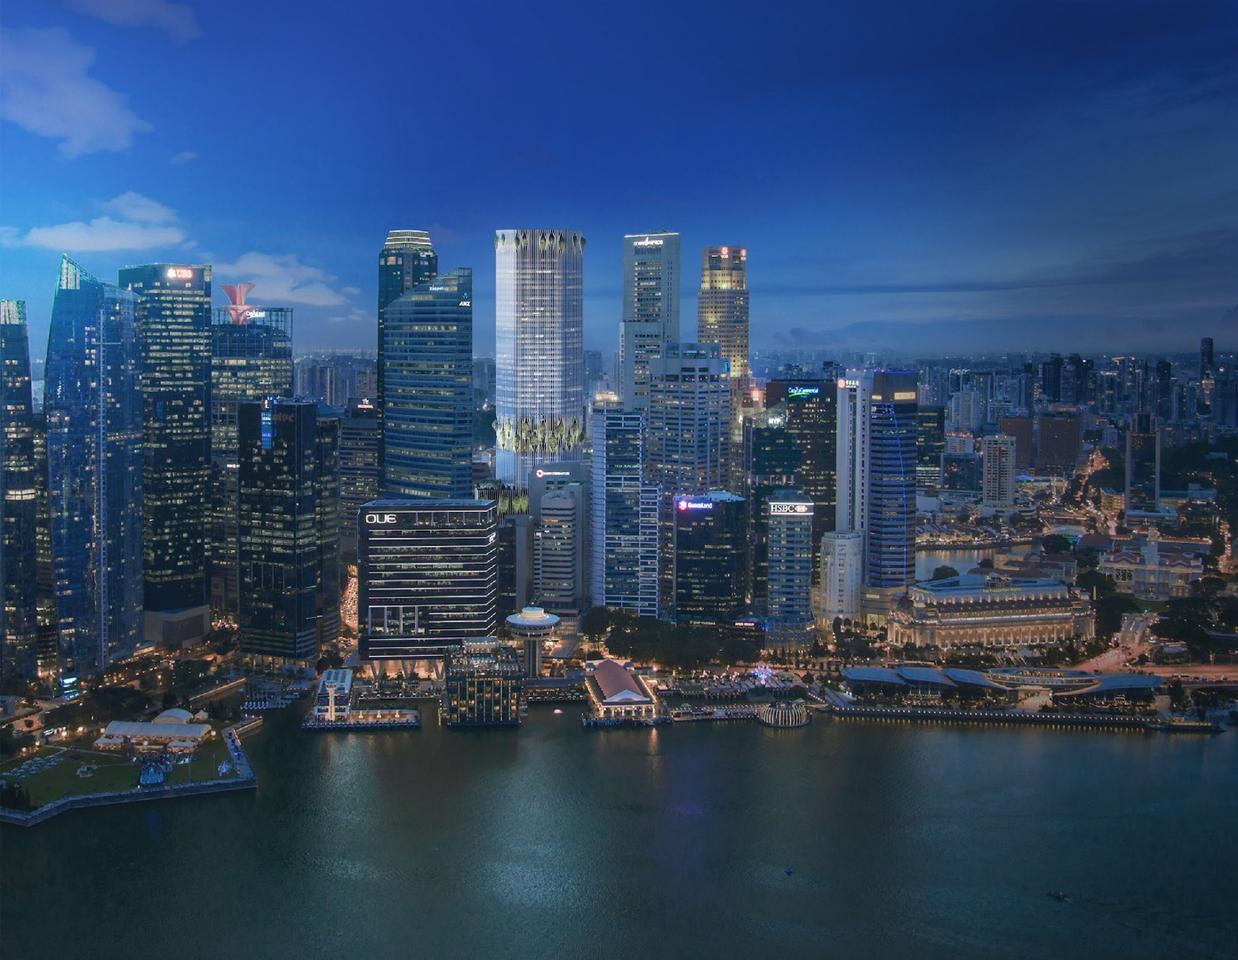 The skyscraper will be located in Singapore's Central Business District